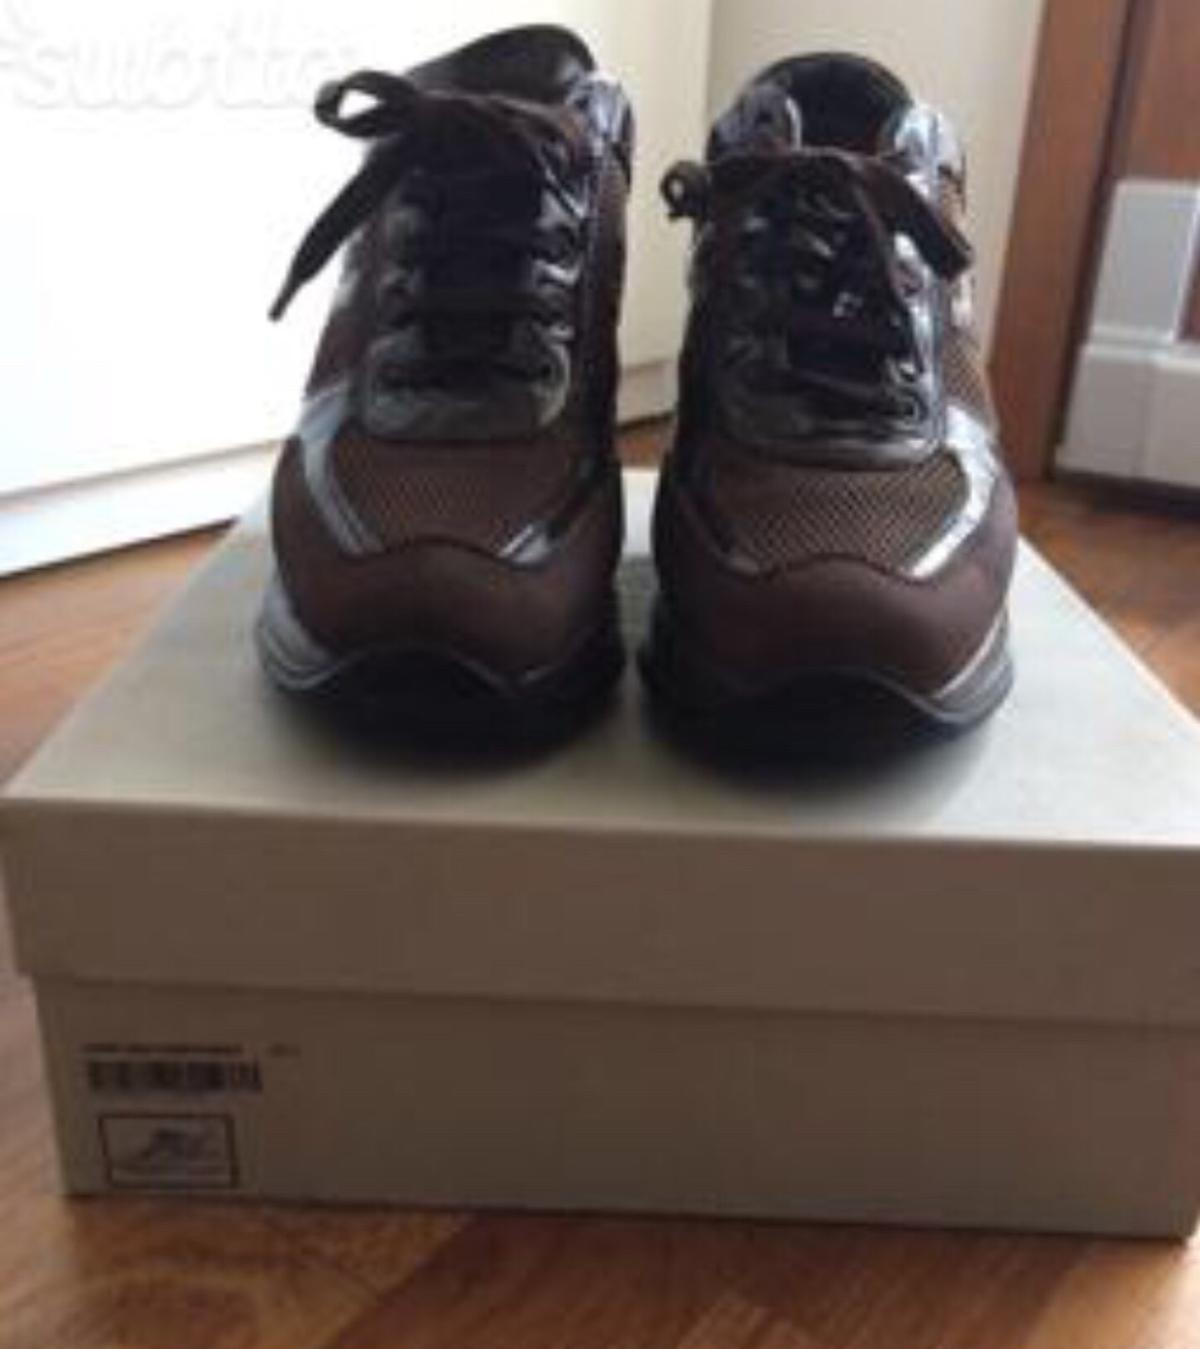 Hogan Attractive Donna in 20851 Lissone for €35.00 for sale | Shpock